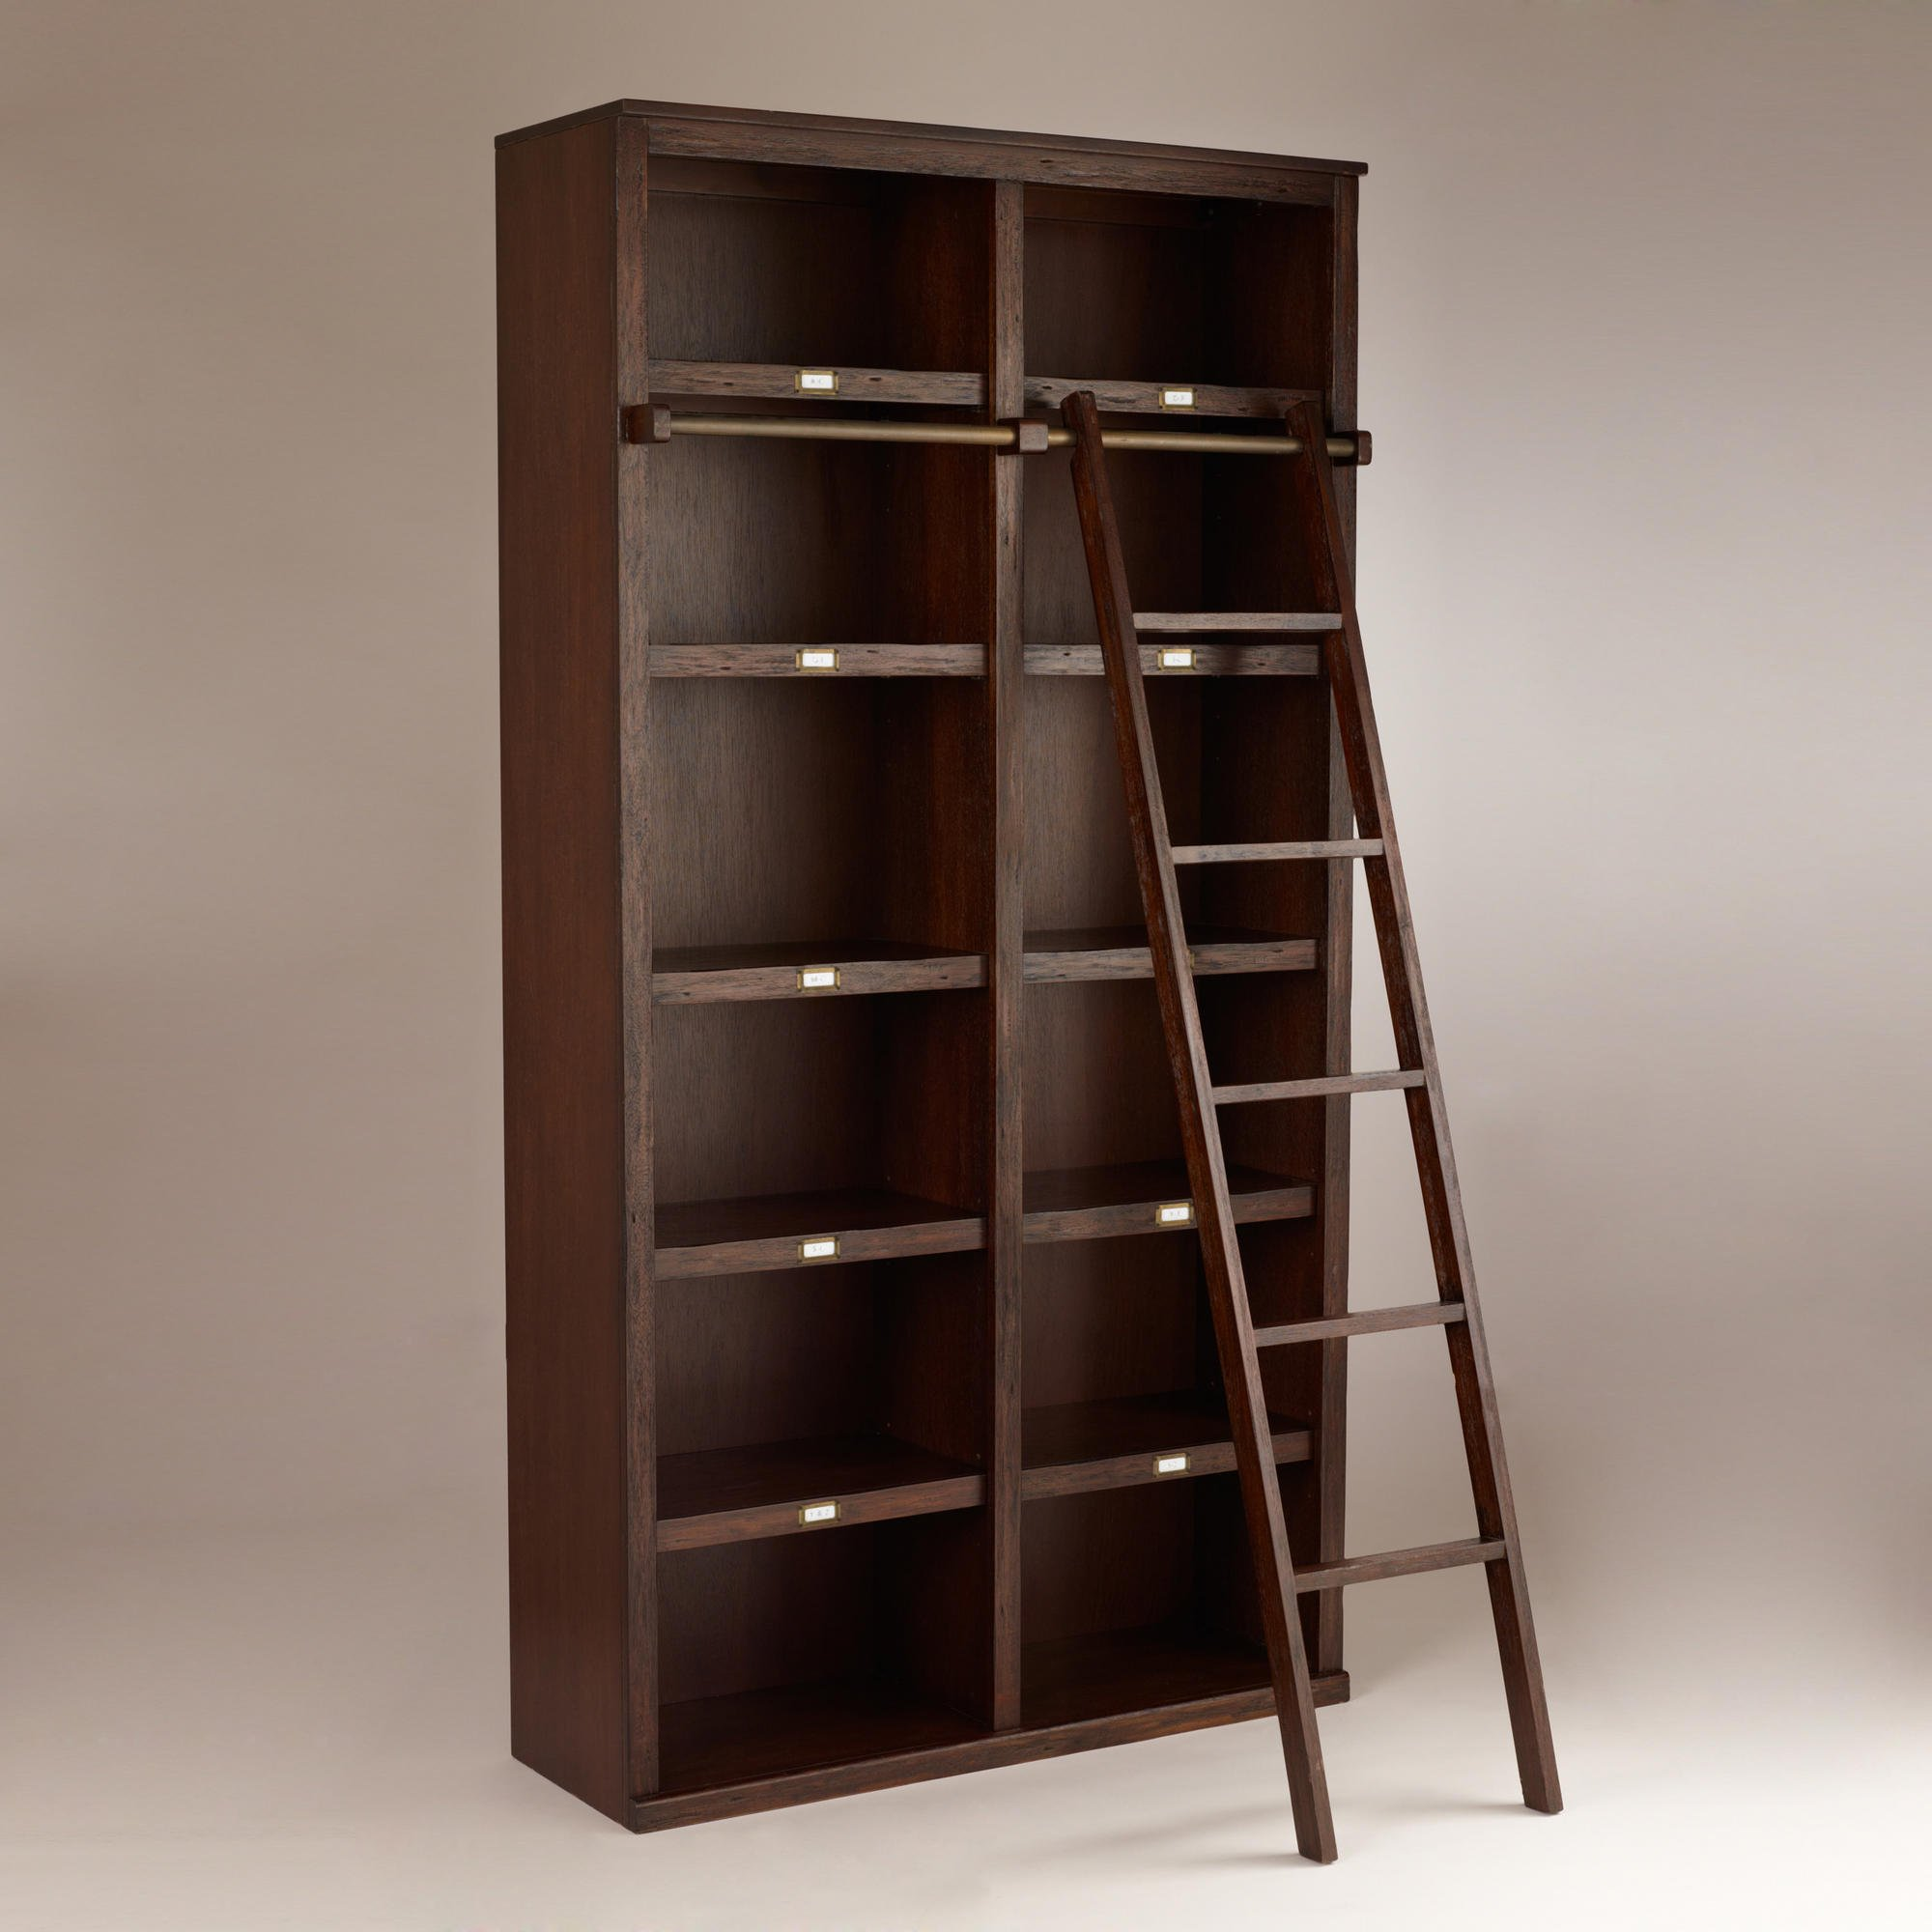 Cost Plus World Market Agustus Library Bookshelf